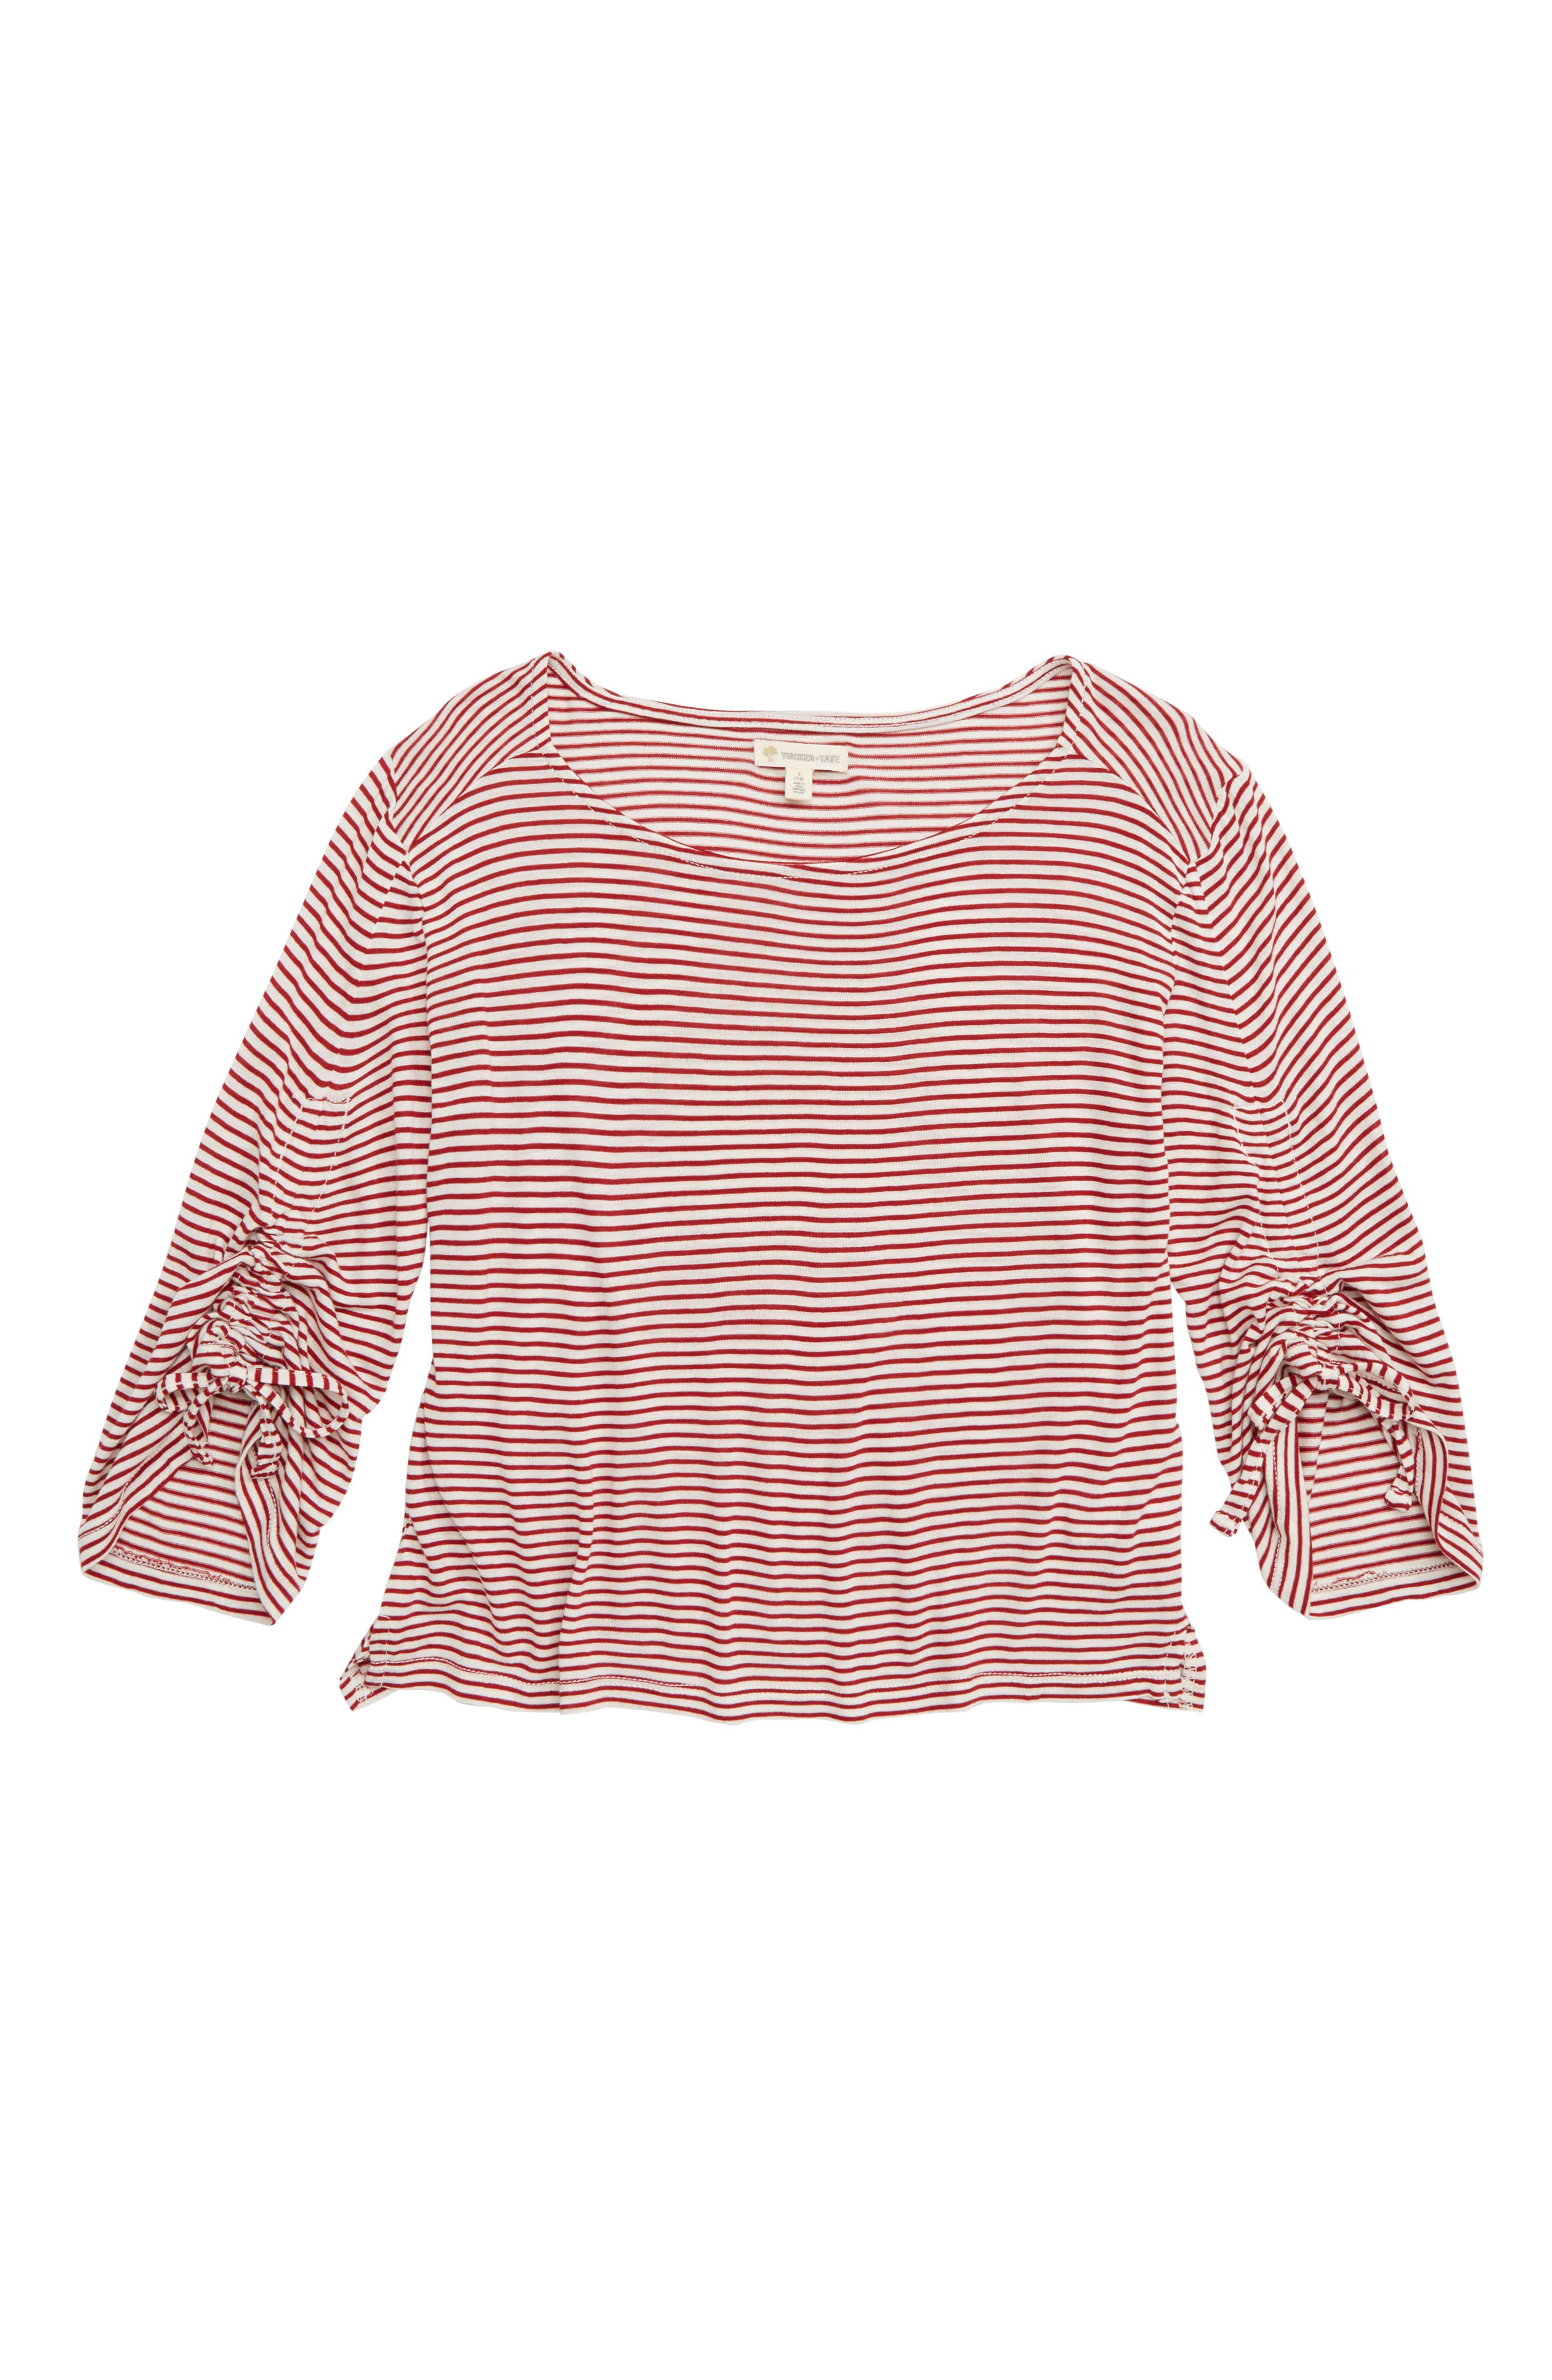 Ruched Sleeve Tee,                             Main thumbnail 1, color,                             RED ROSEWOOD- IVORY STRIPE